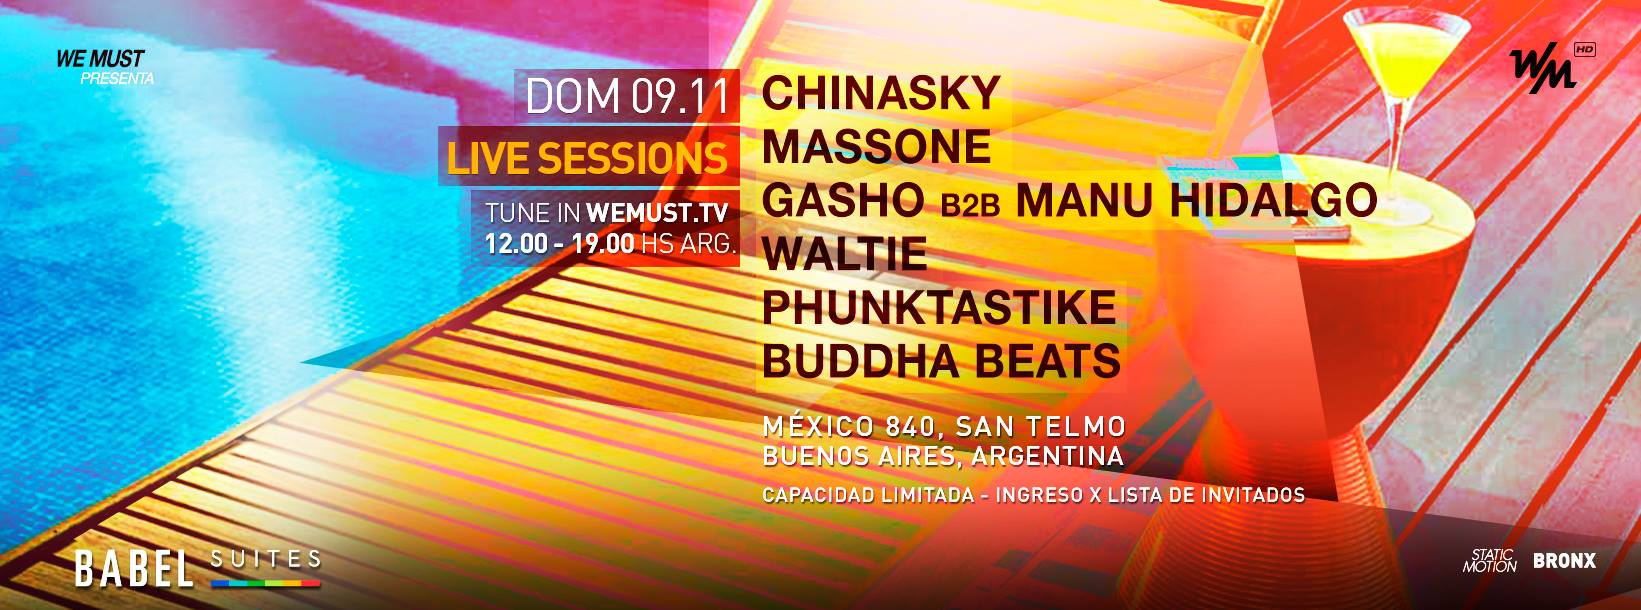 We must Live sessions 09-11